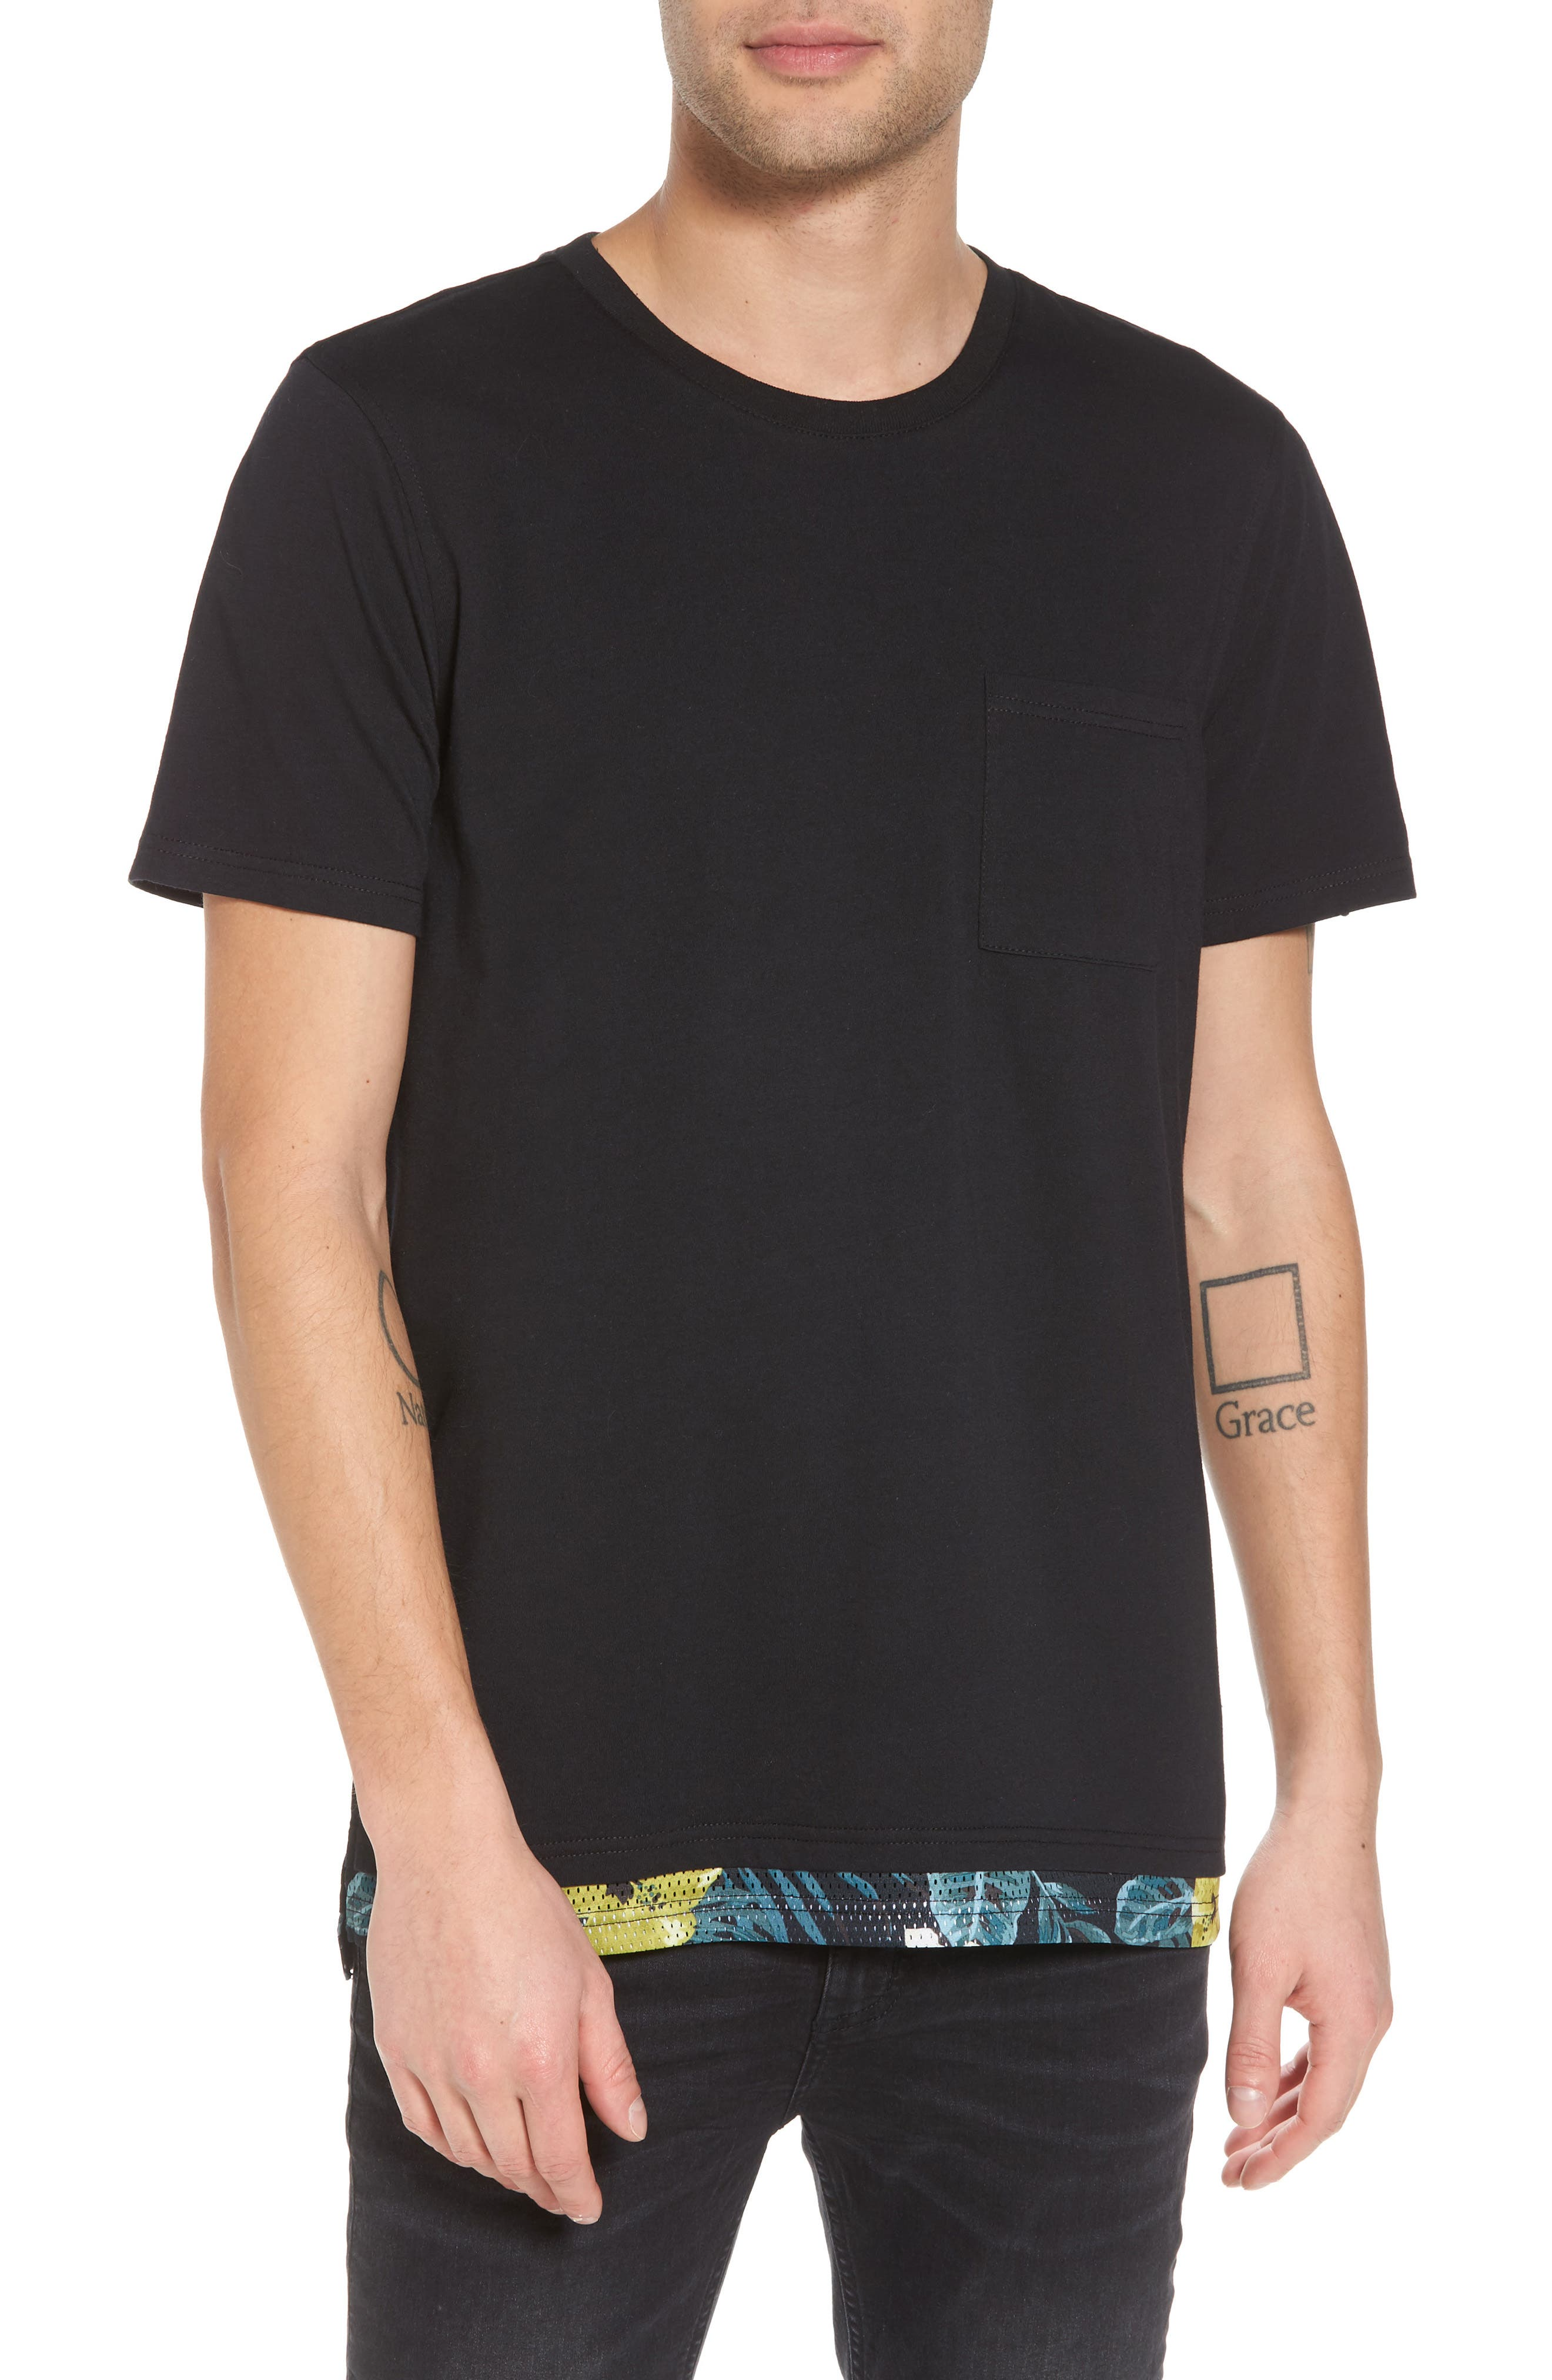 Main Image - The Rail Contrast Mesh Layered T-Shirt